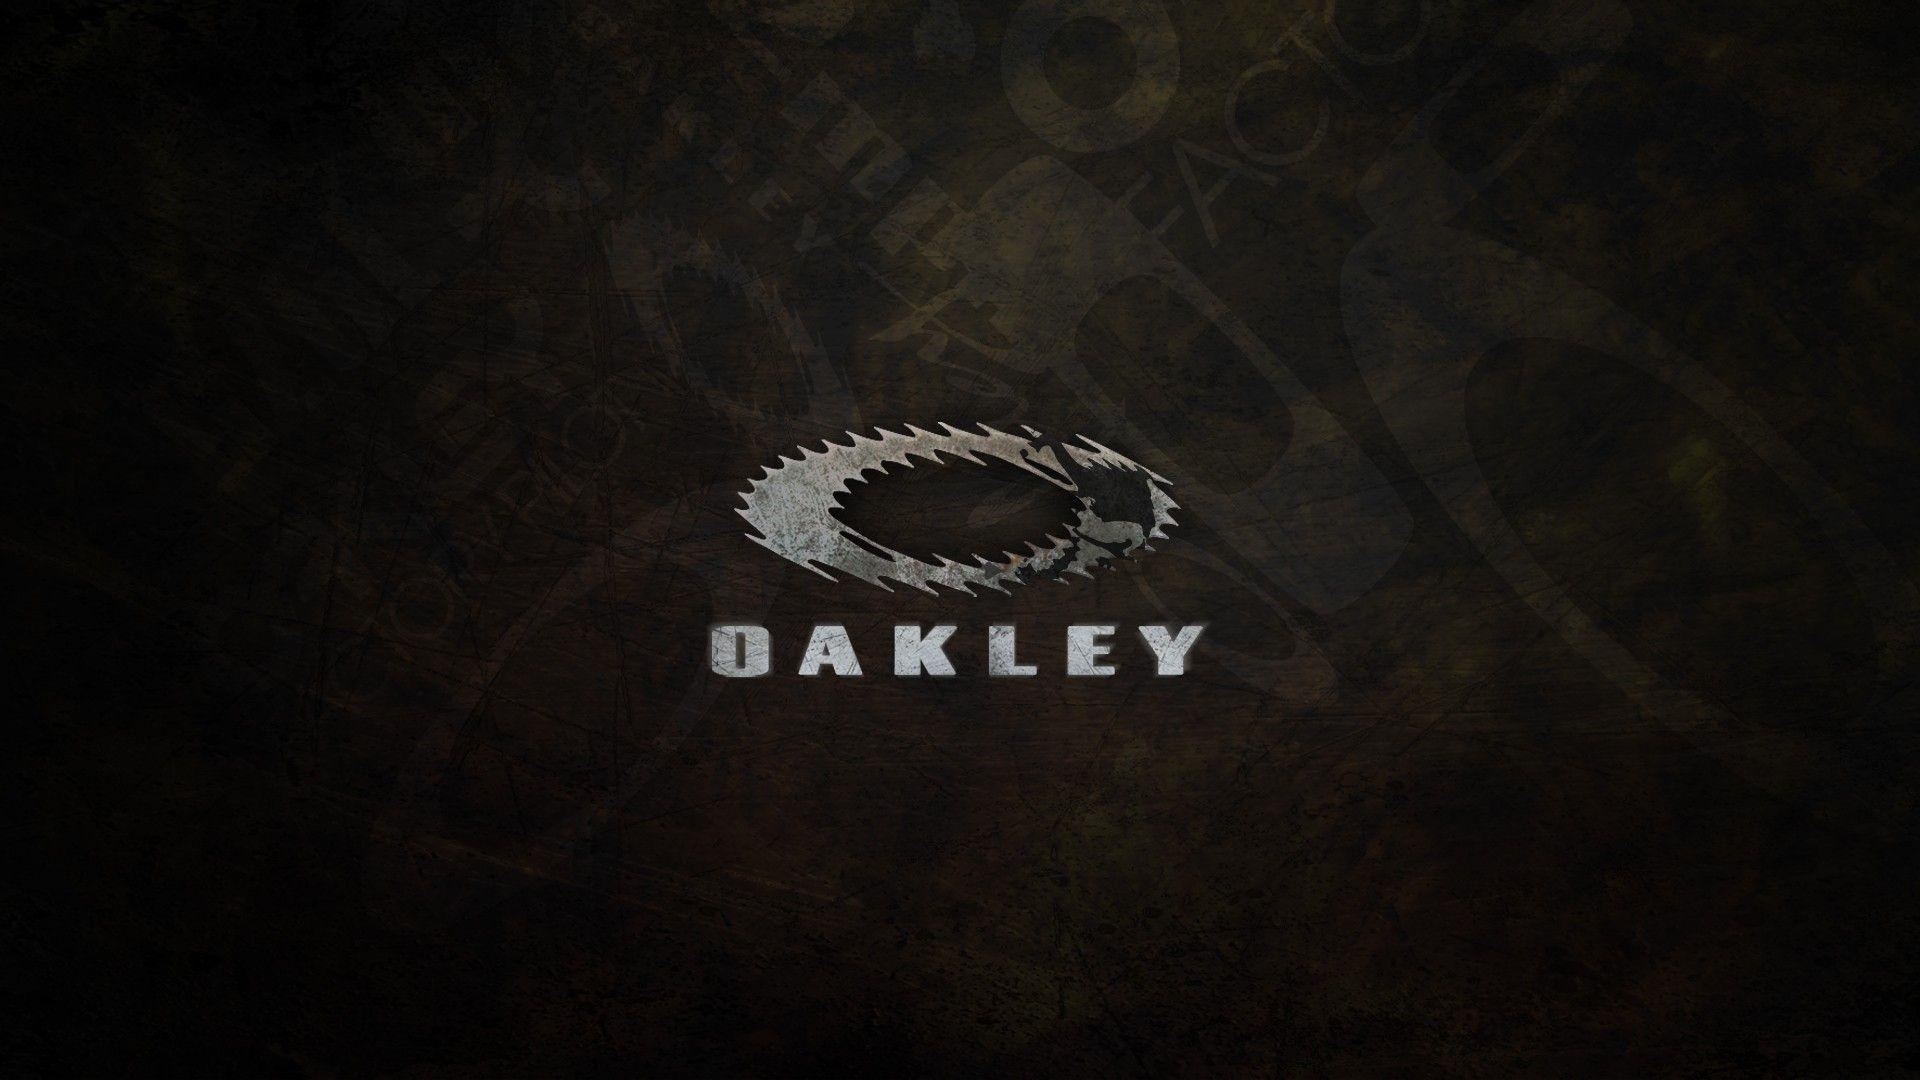 Oakley Wallpapers - Wallpaper Cave